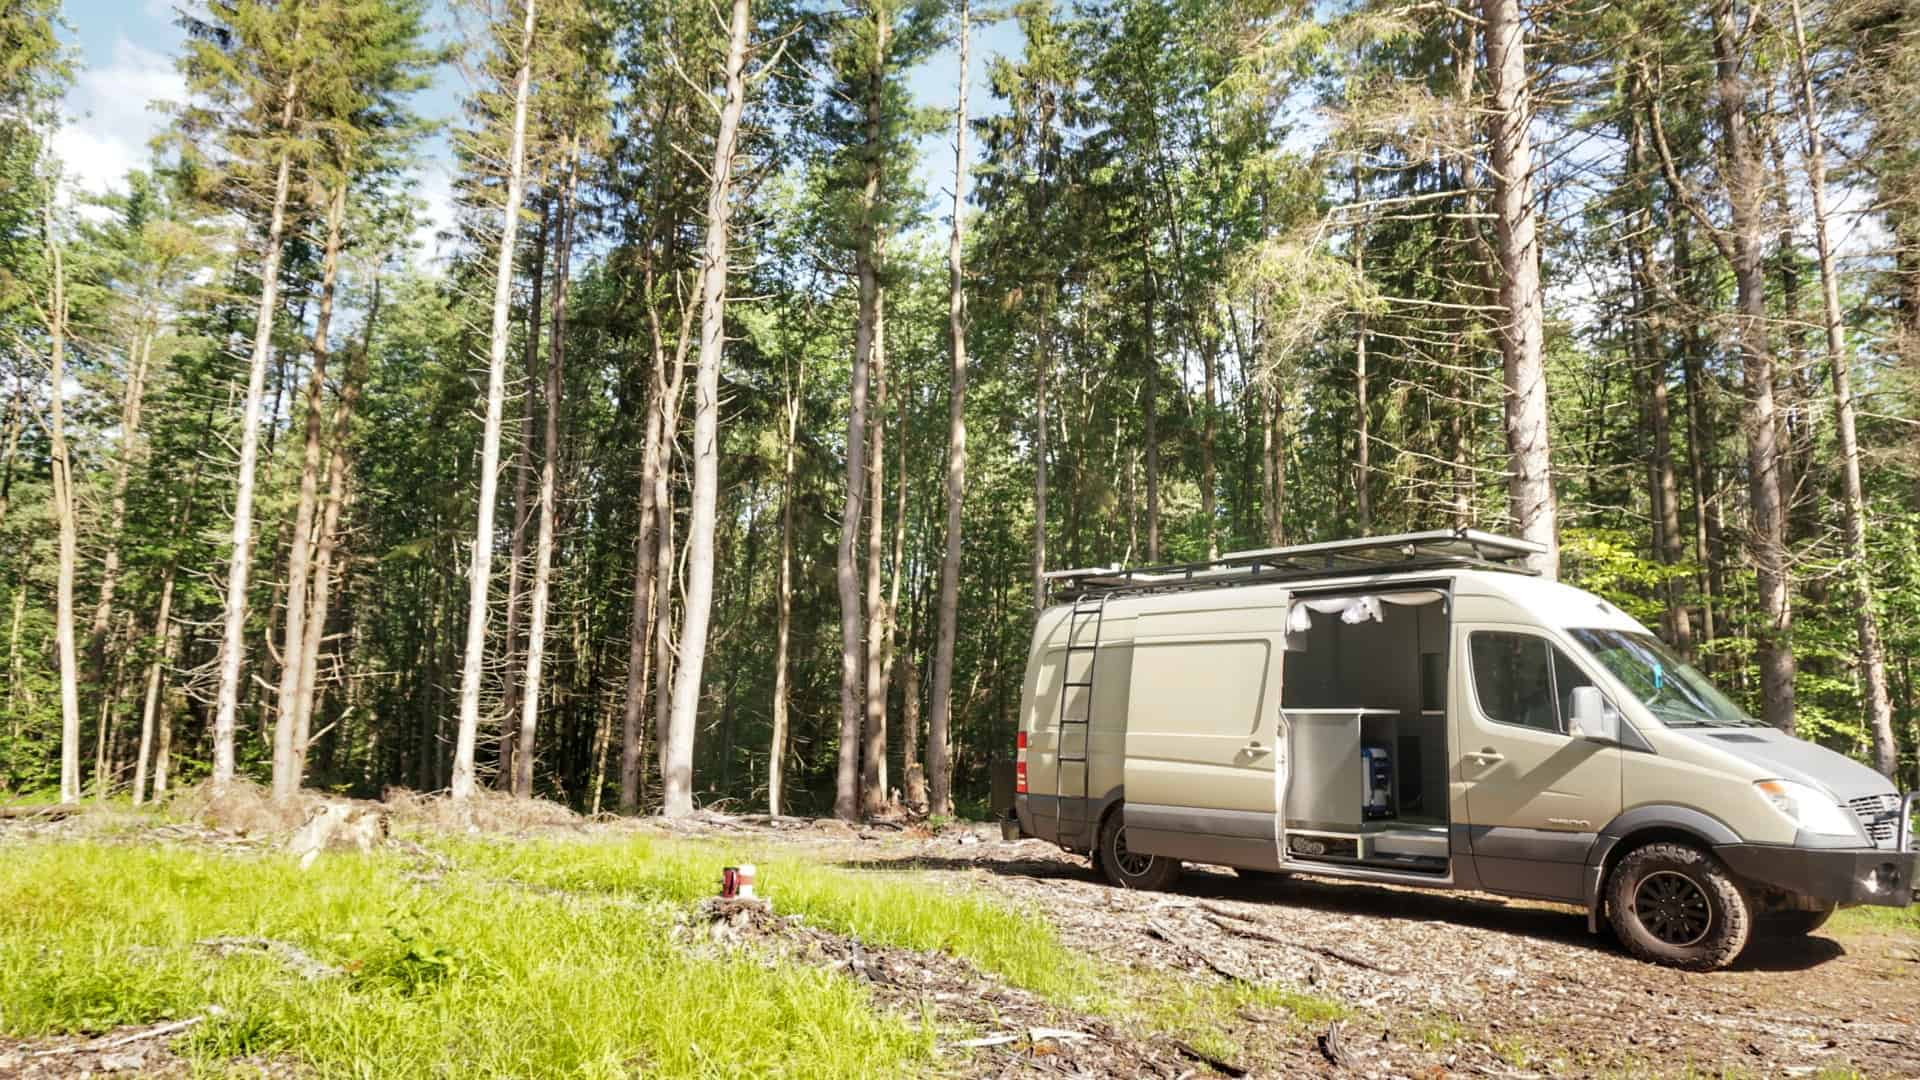 Winona State Forest Boondocking